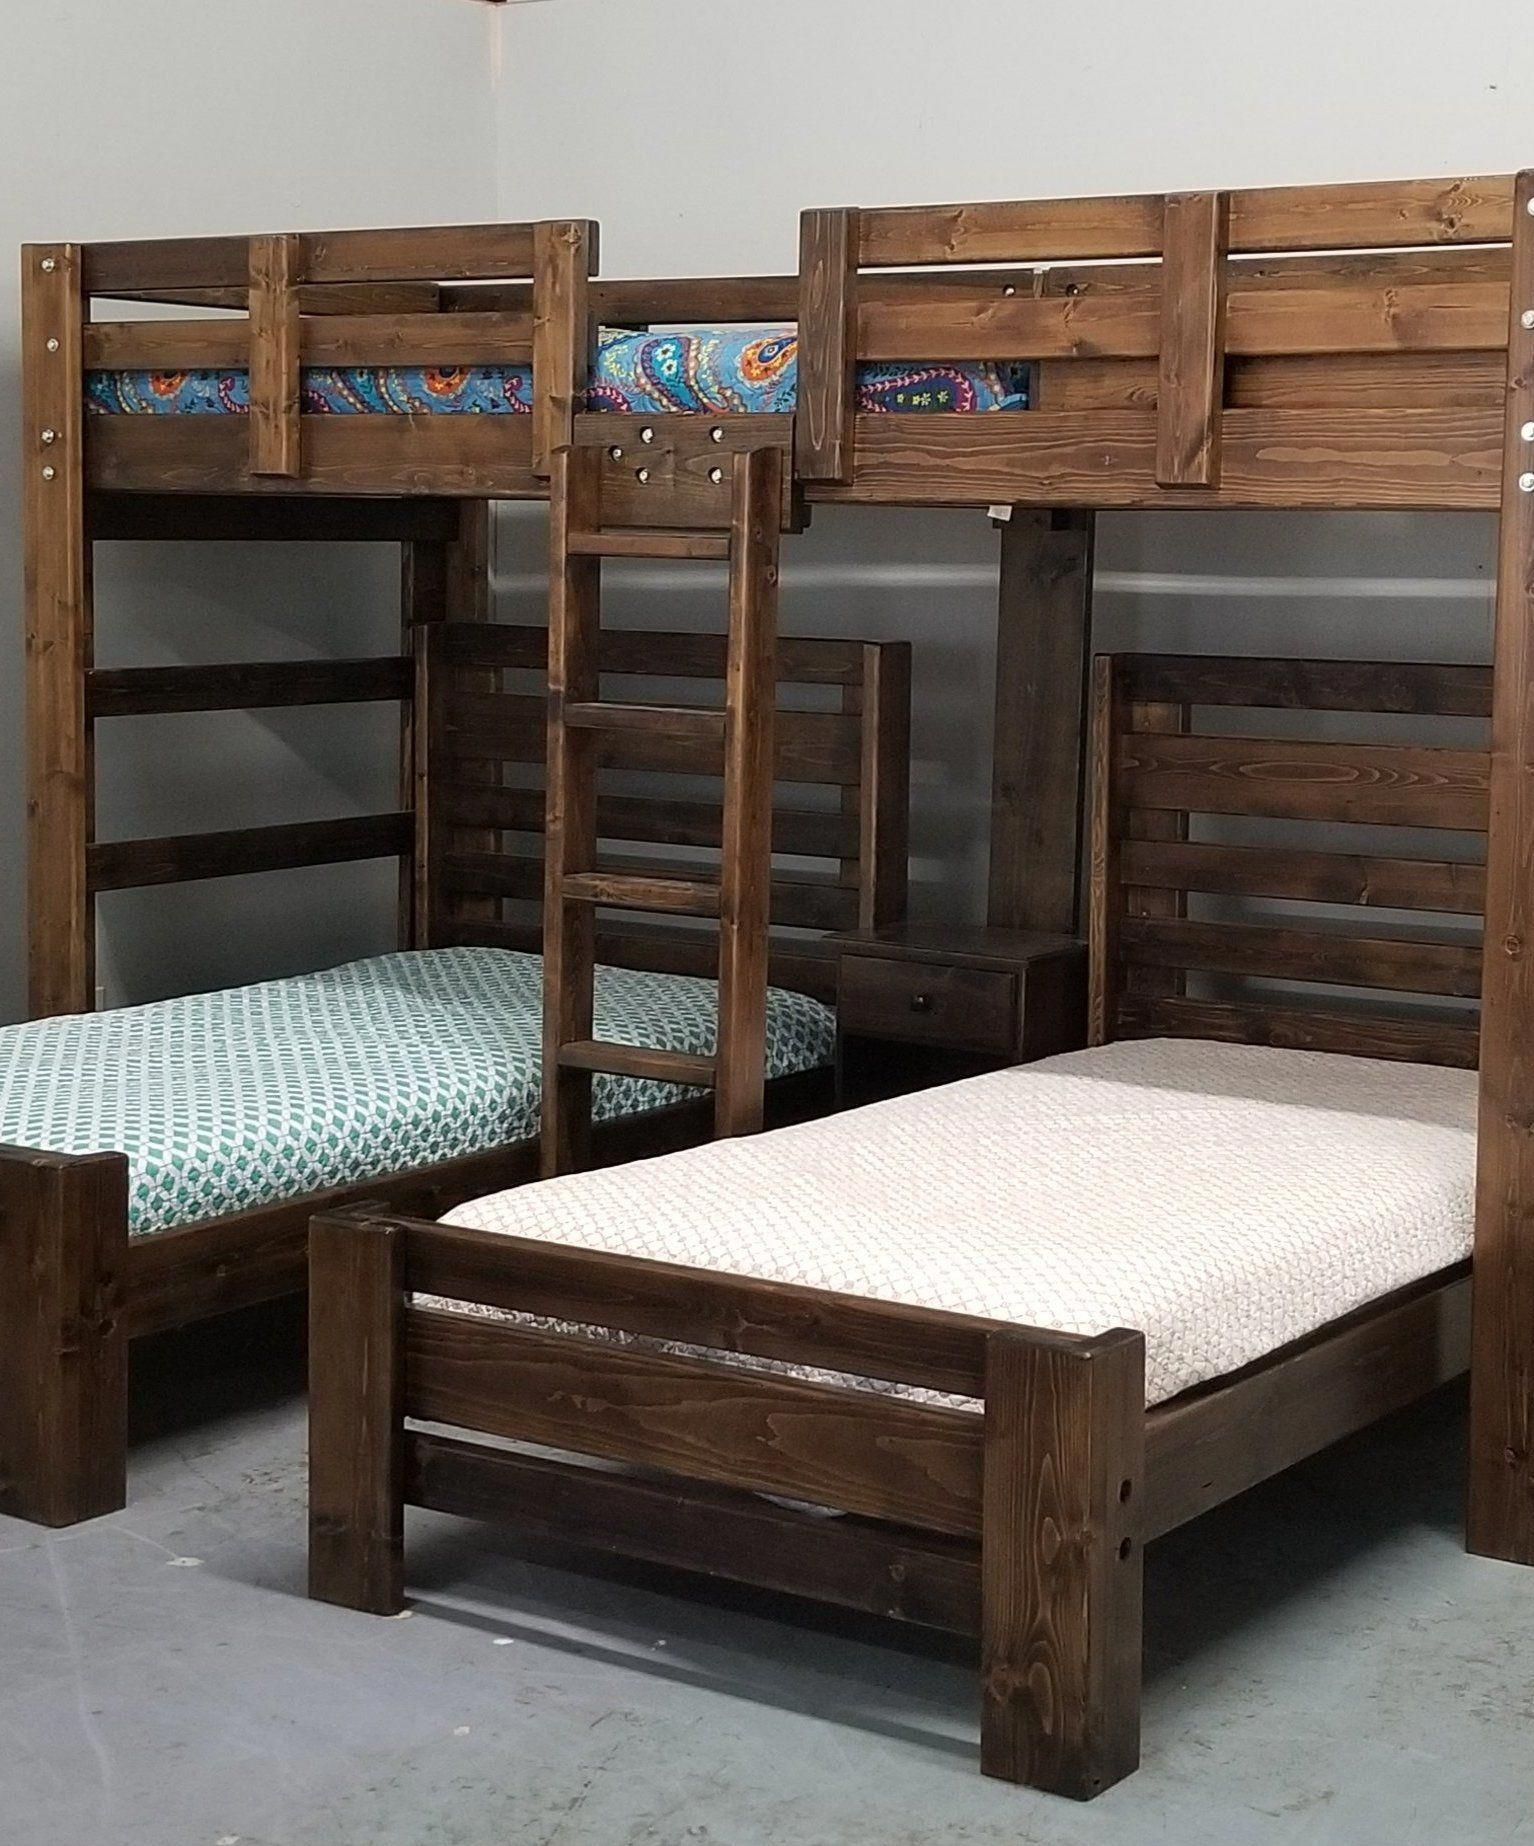 Audrey Triple Bunk Bed in White in 2020 (With images